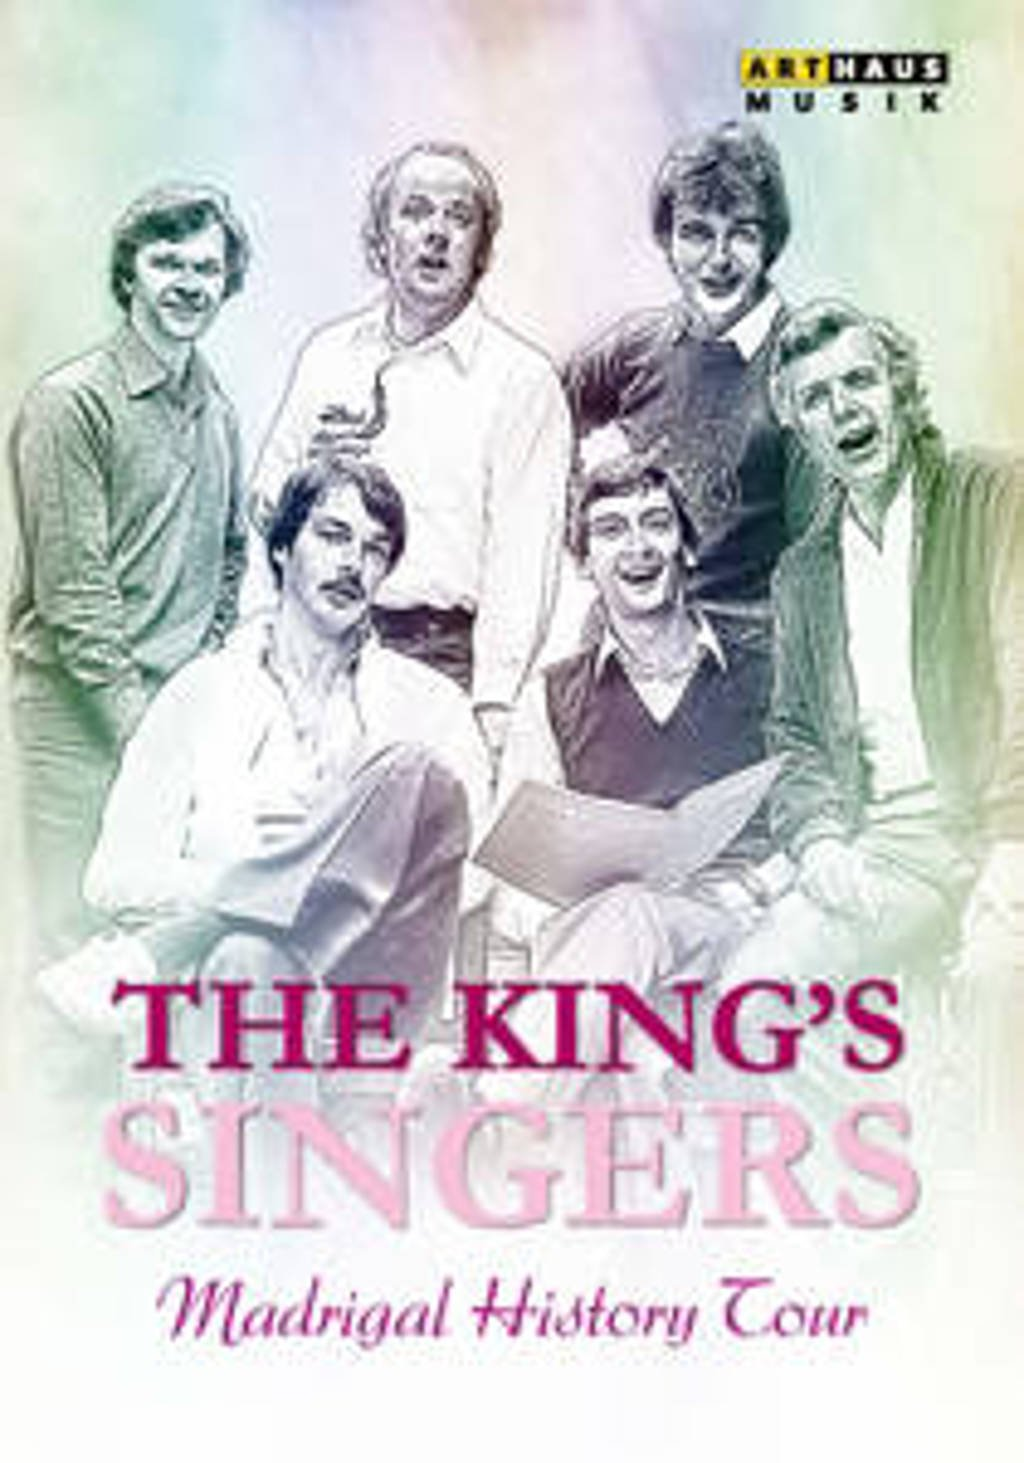 Jackman,Mason,Hume - The King's Singers  Madrigal Histor (DVD)